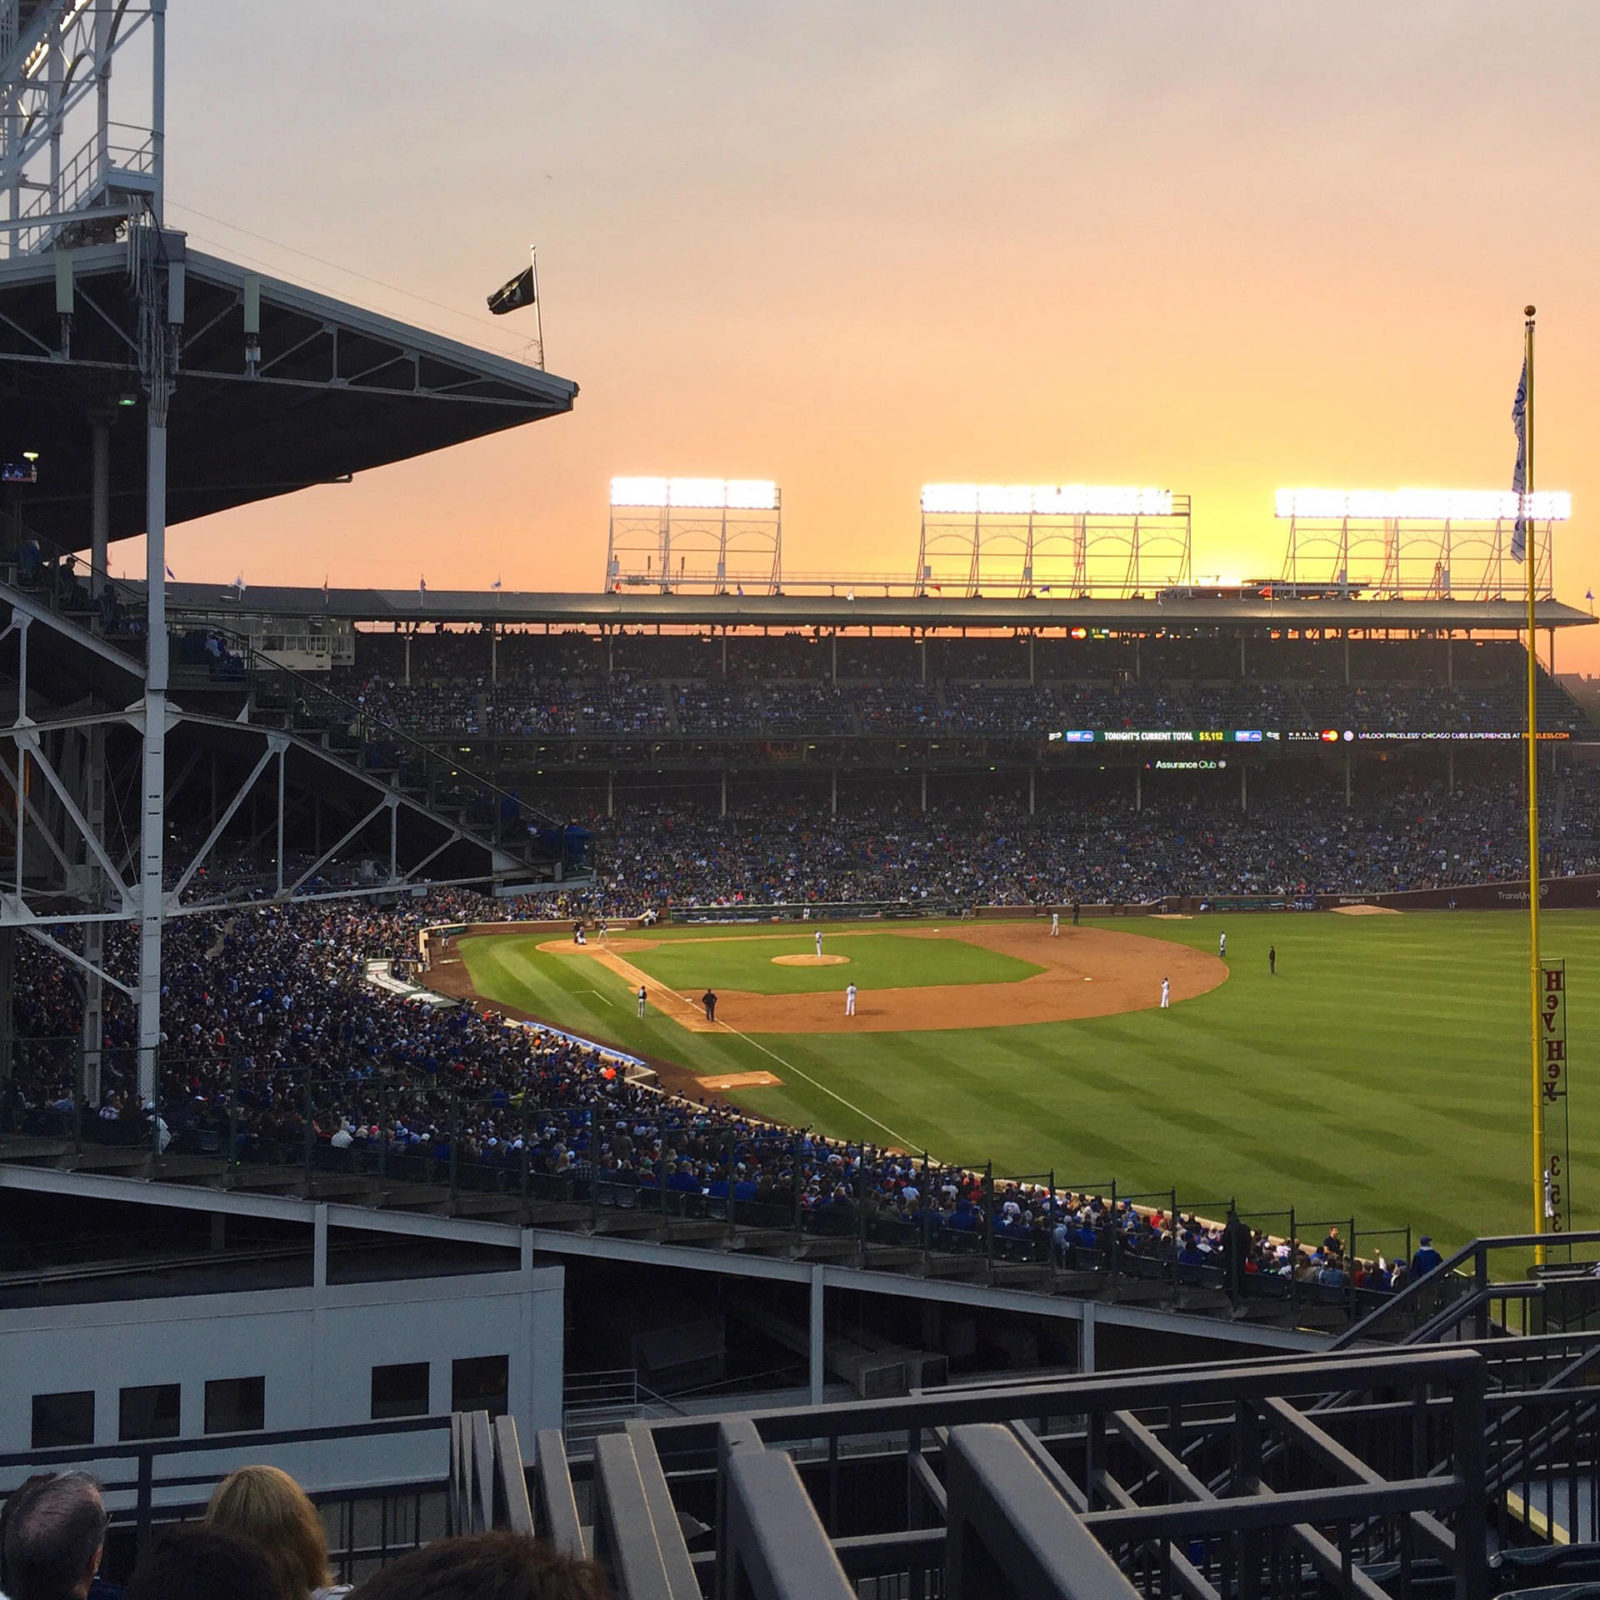 Sunset from the Bleacher Seats at Wrigley Field